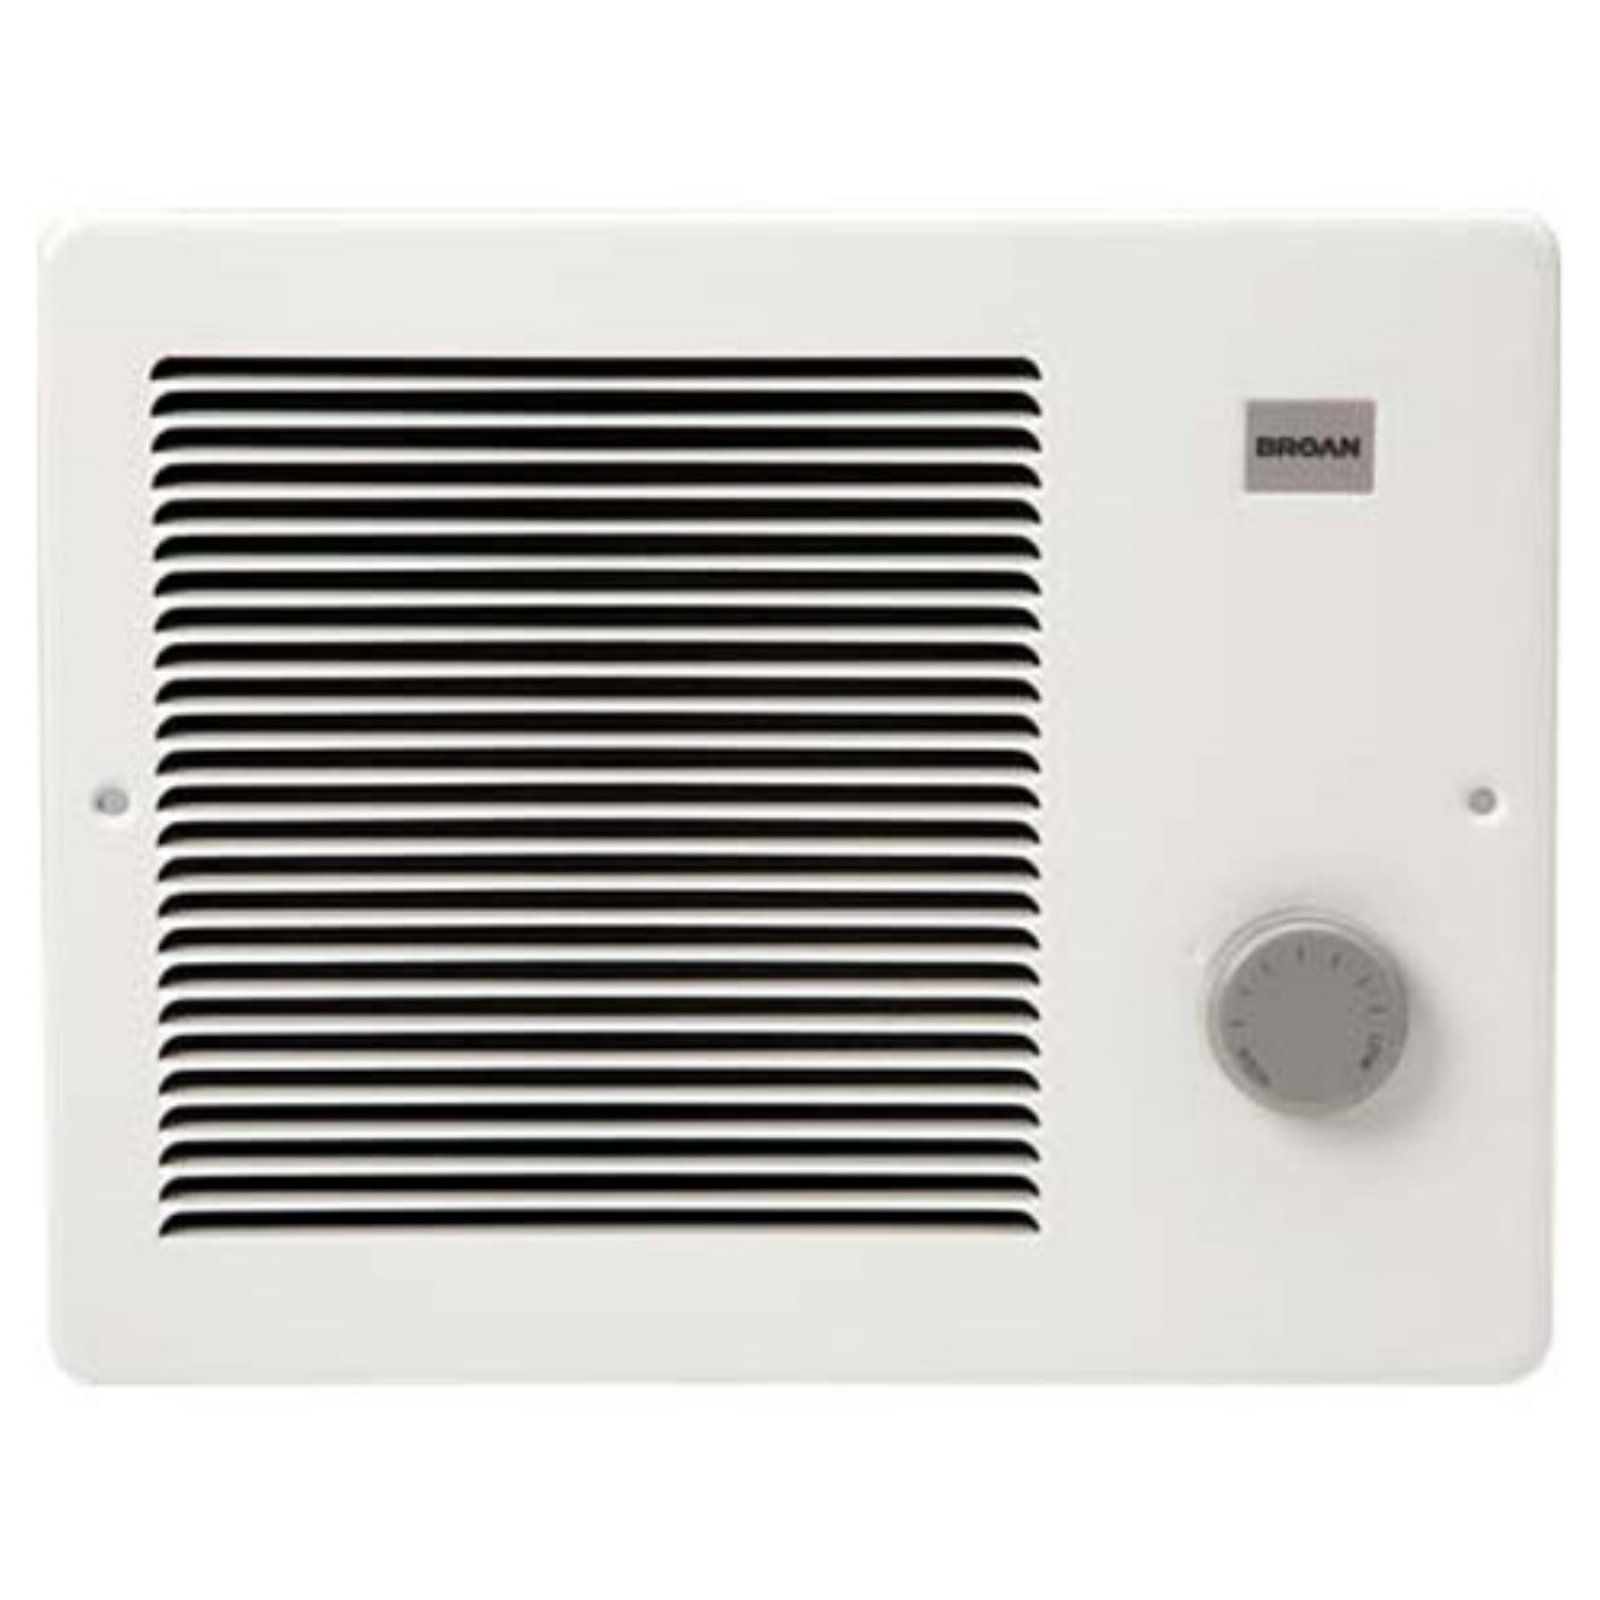 BroanNuTone Wall Heater Off White Wall fans, Electric